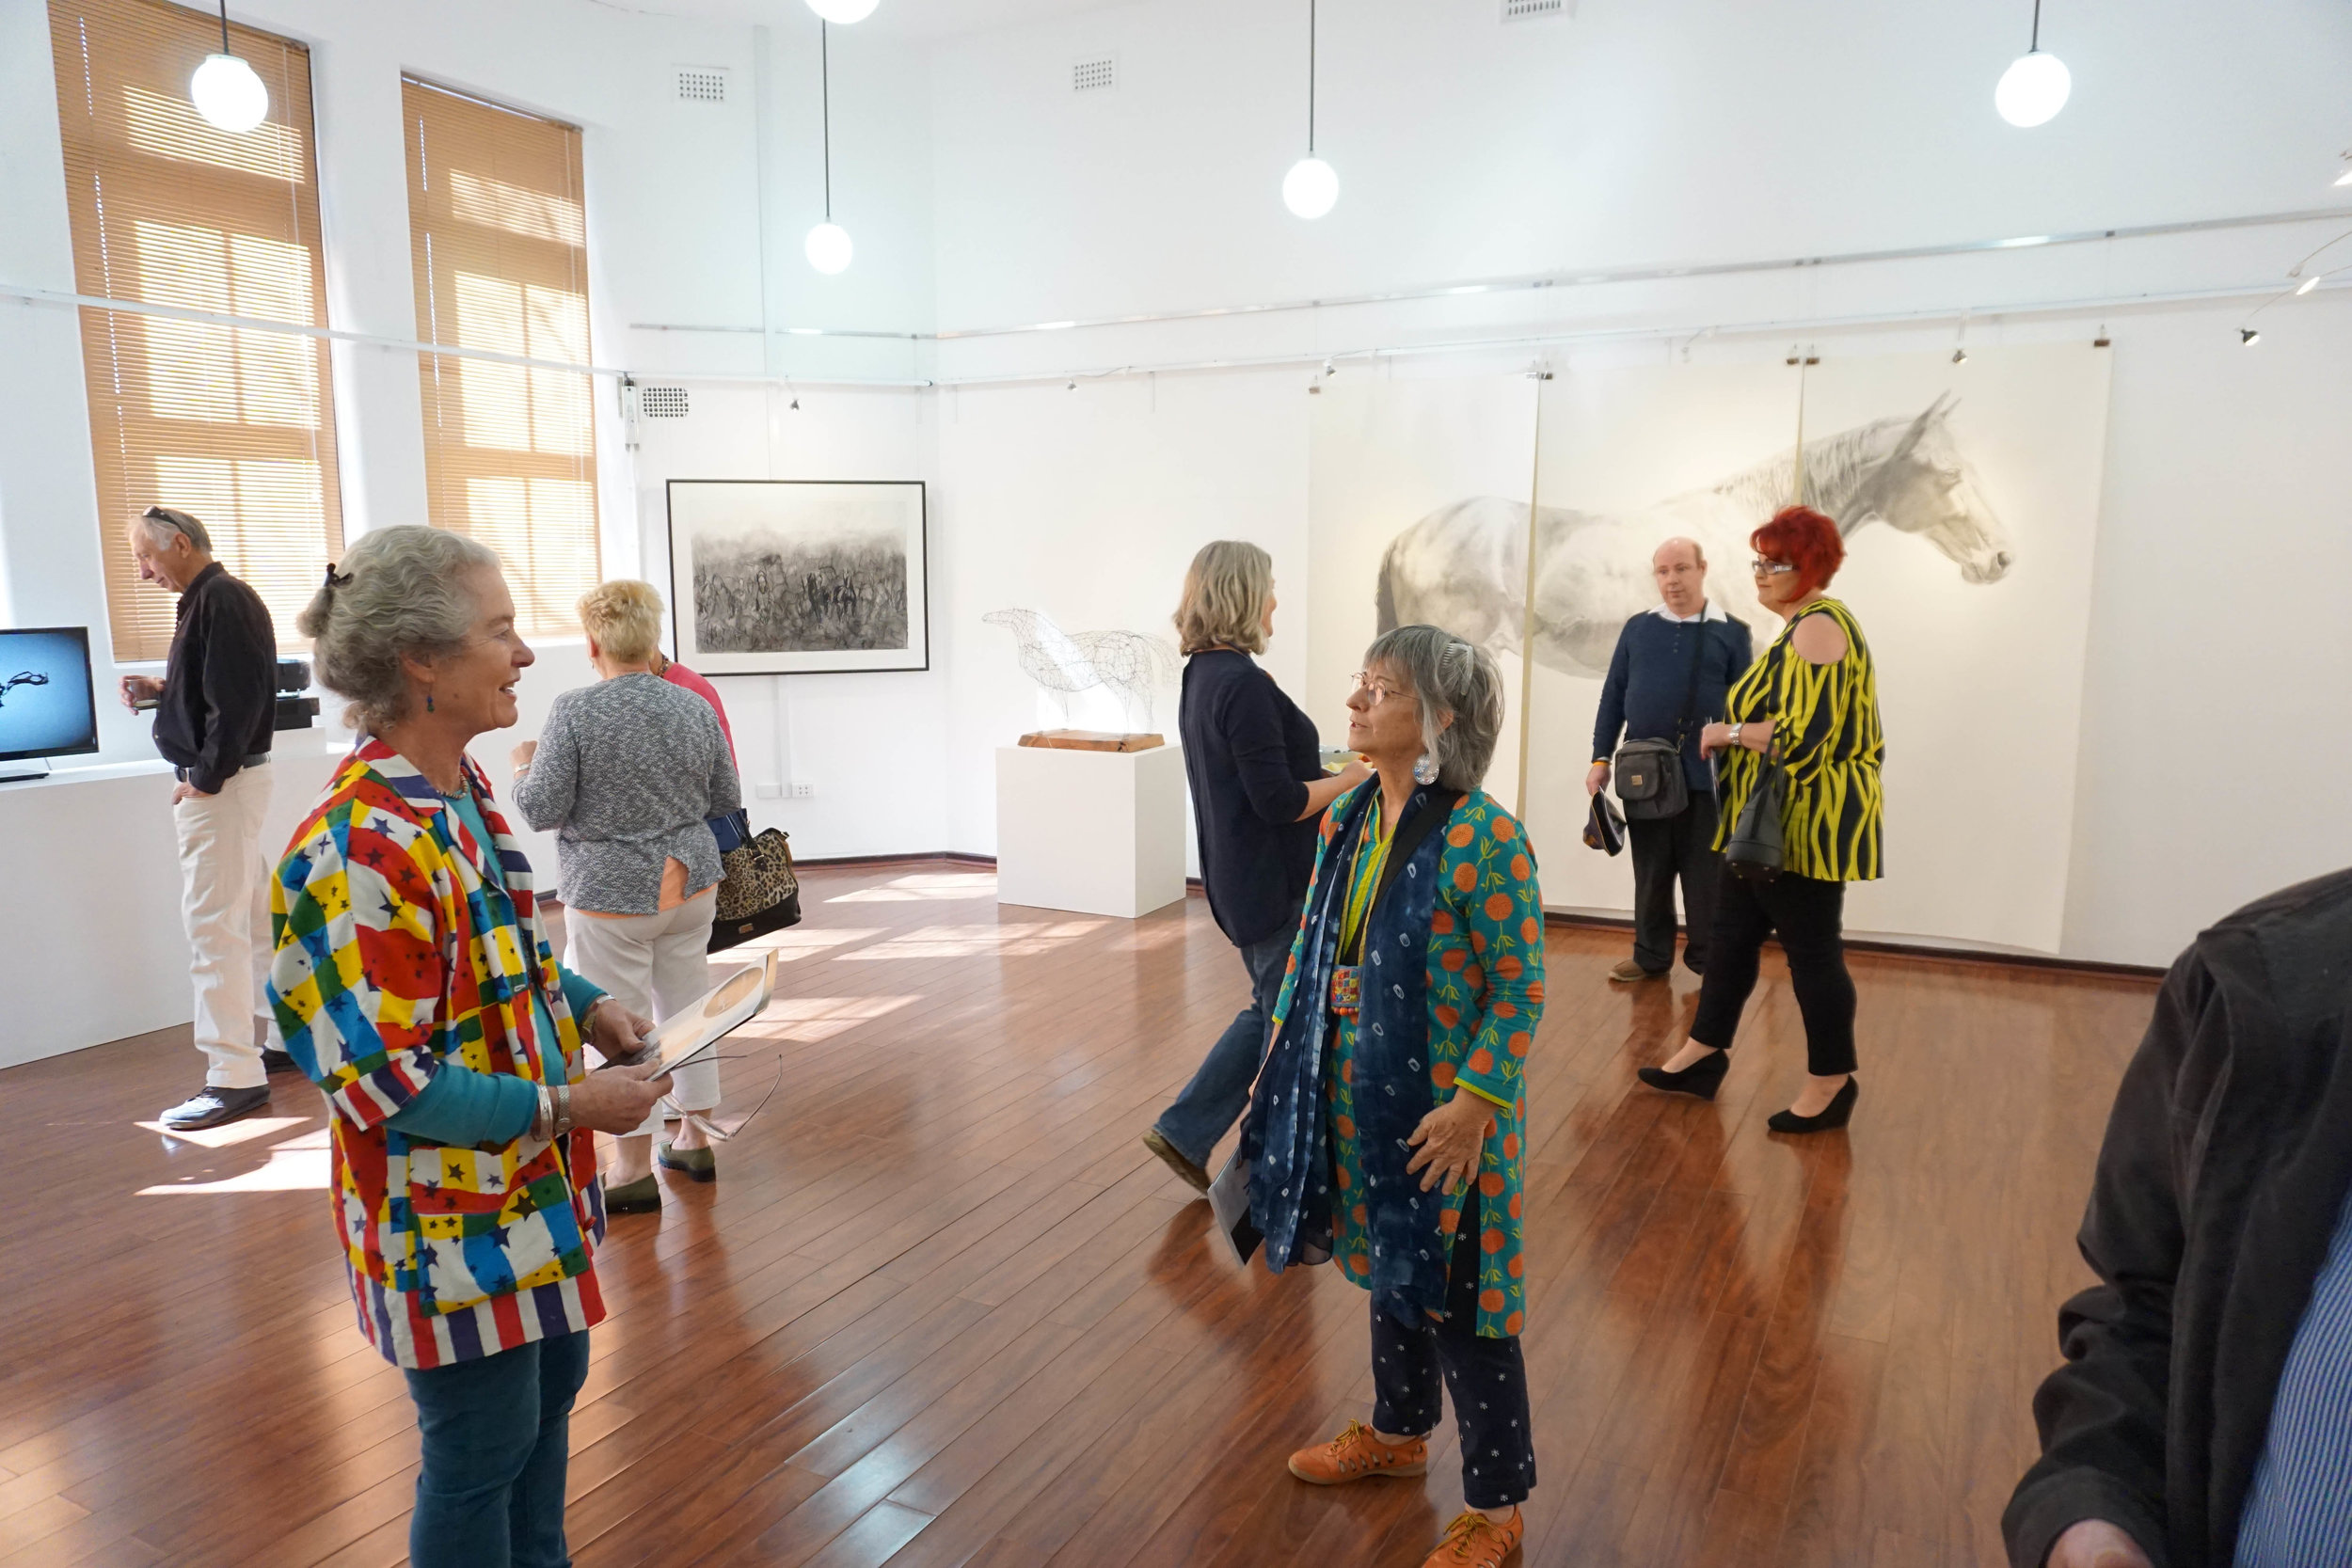 Image: In the foreground 'Horse Drawn' exhibiting artists Madeleine Clear and Linda van der Merwe